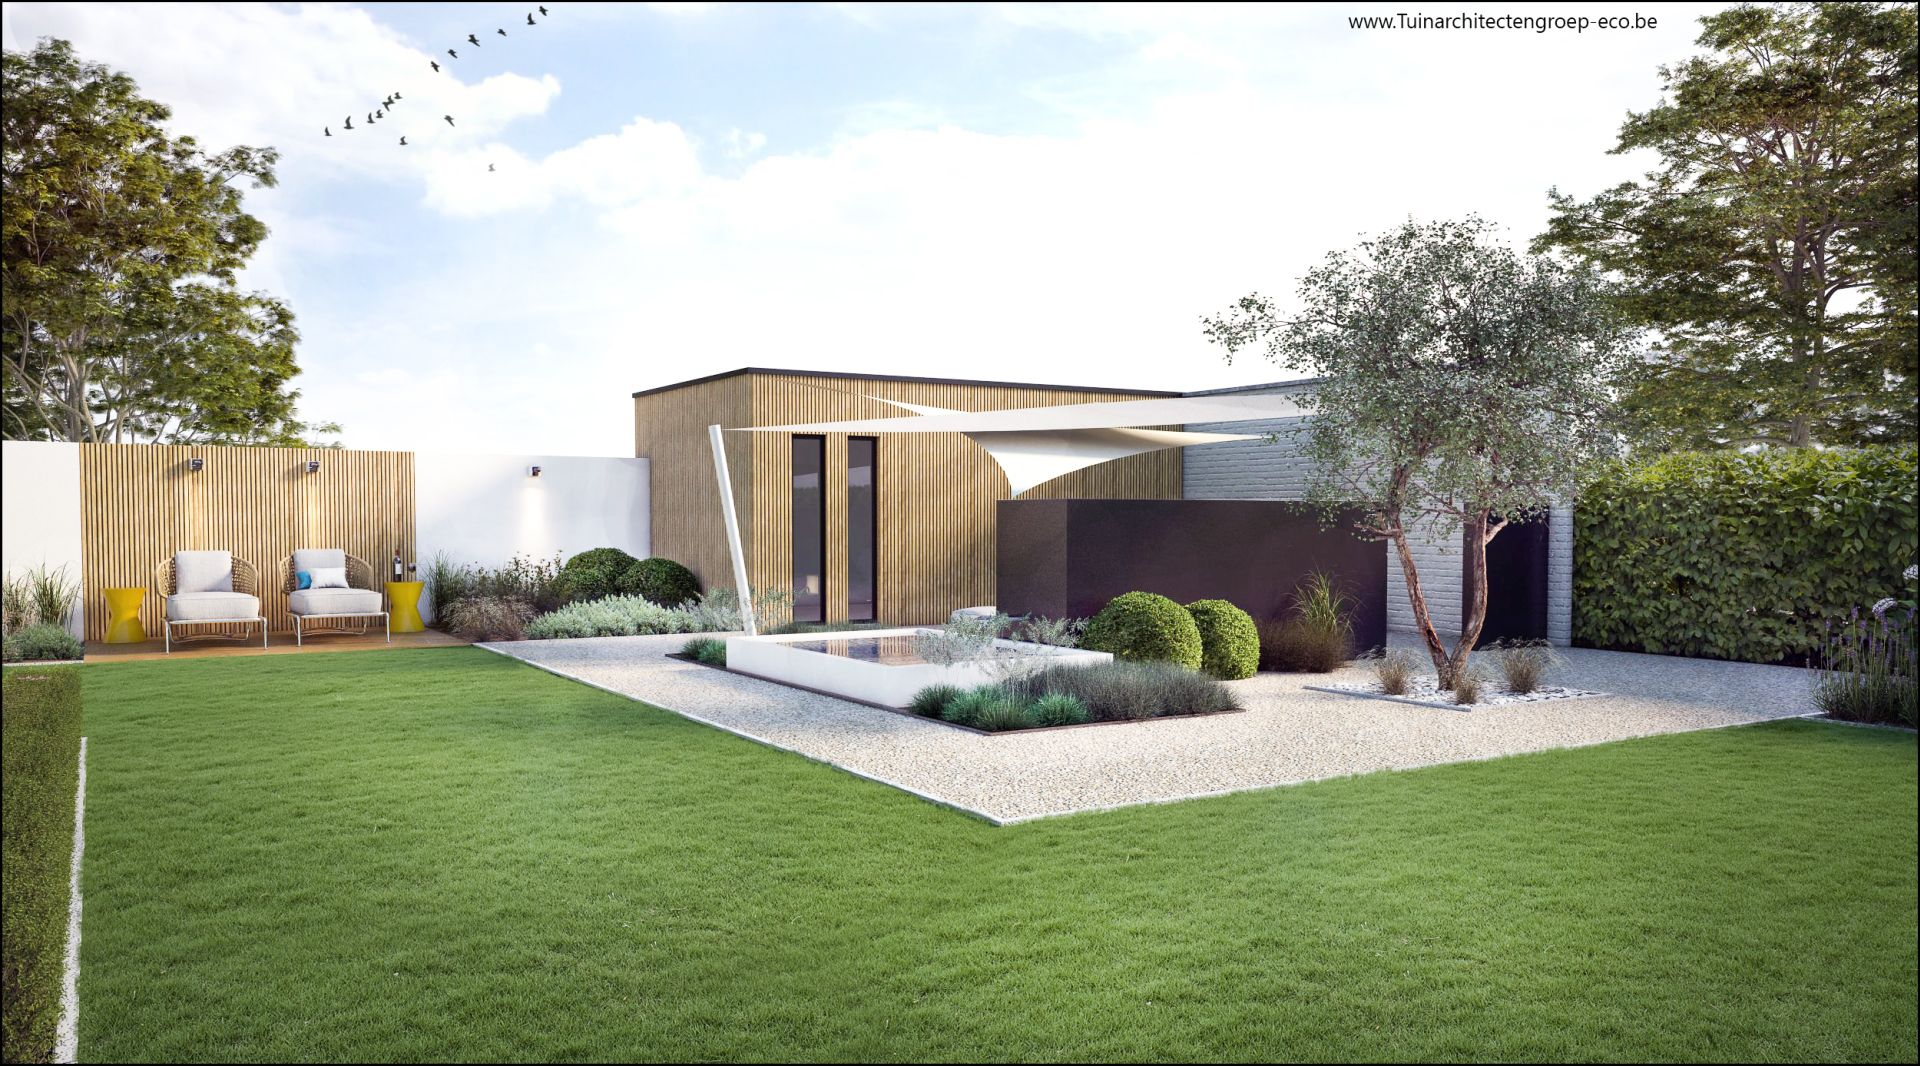 Eco tuinarchitectengroep 3d projecten moderne tuin ninove for Moderne tuin